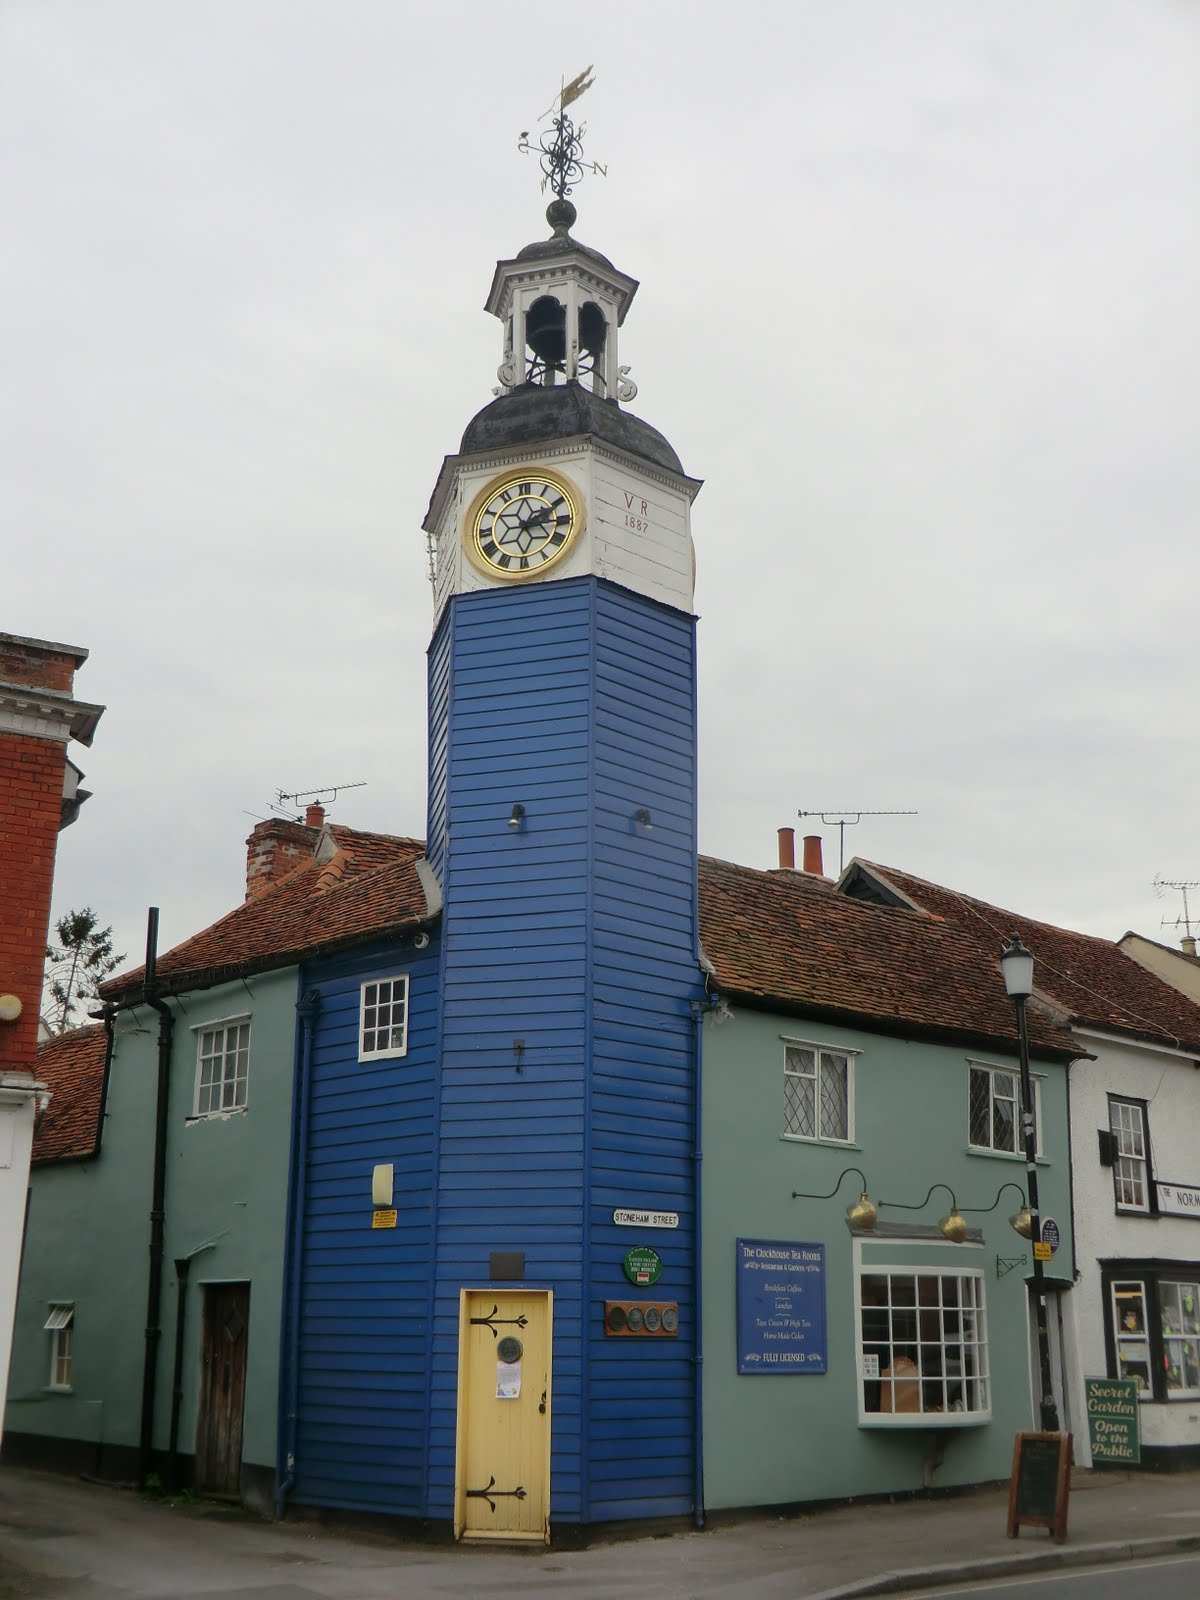 CIMG0415 Clock Tower, Coggeshall